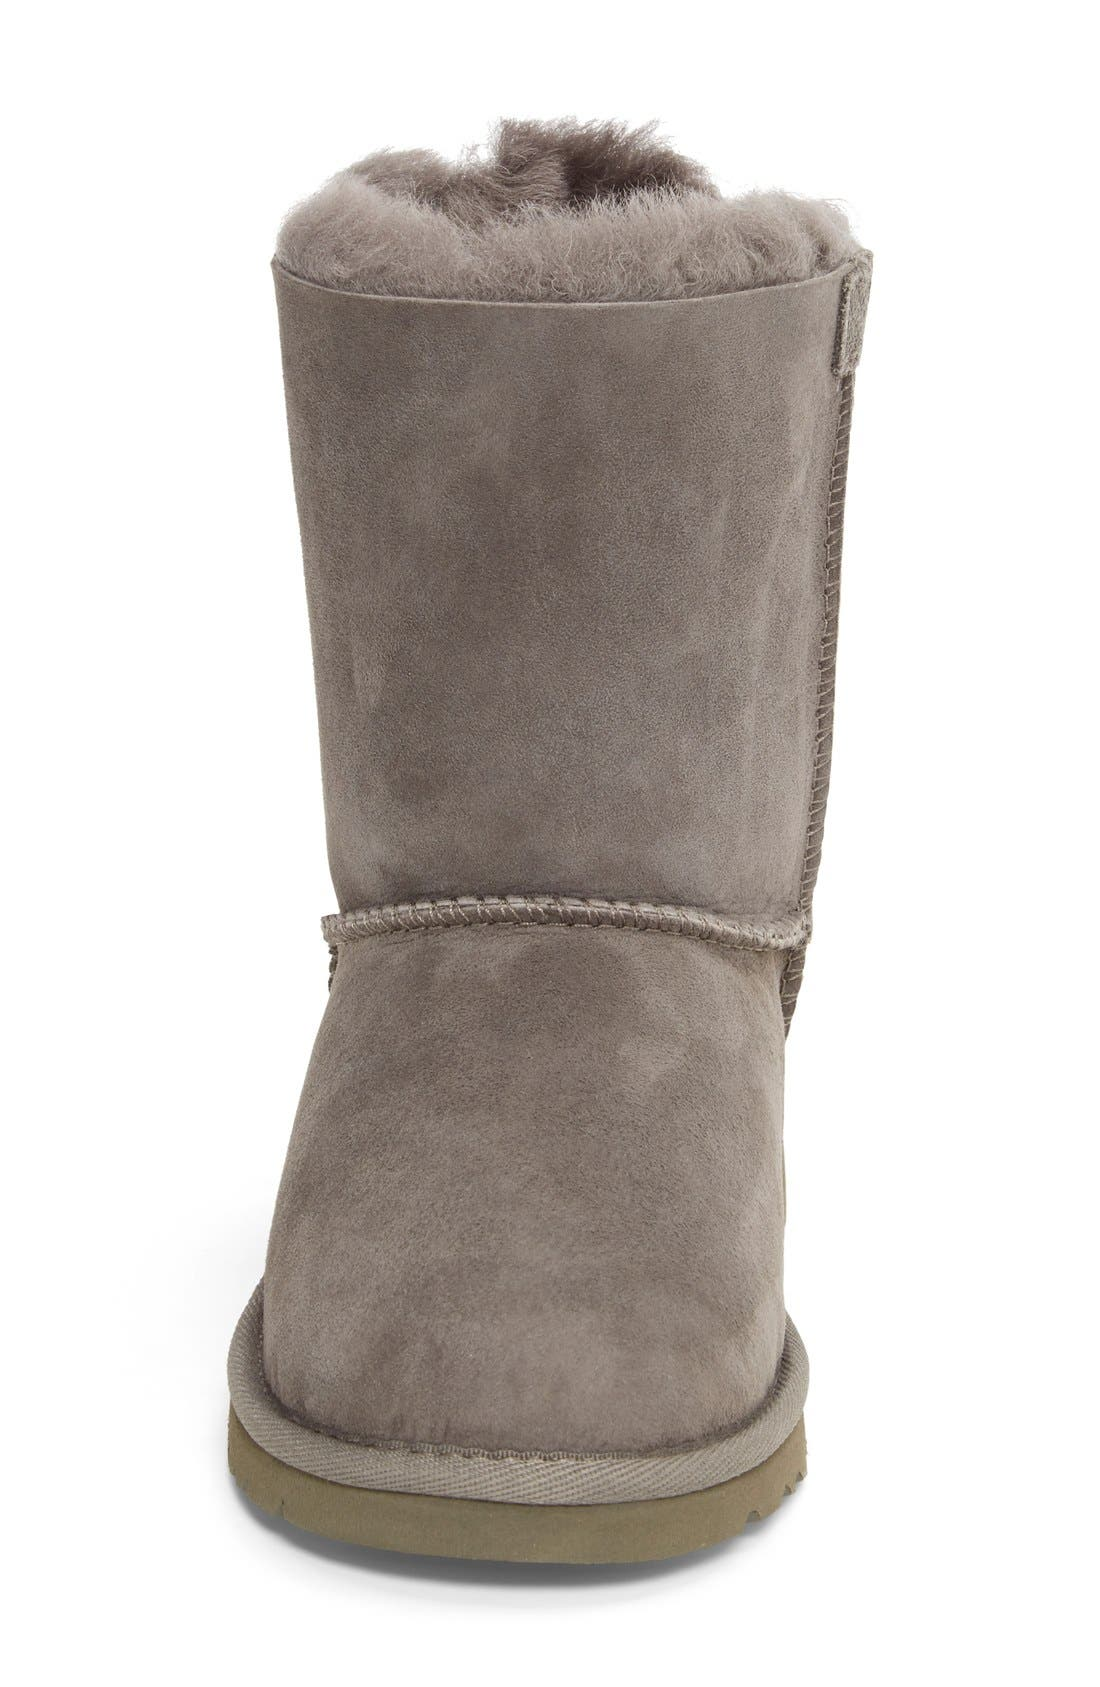 Alternate Image 3  - UGG® Bailey Bow Boot (Walker, Toddler, Little Kid & Big Kid)